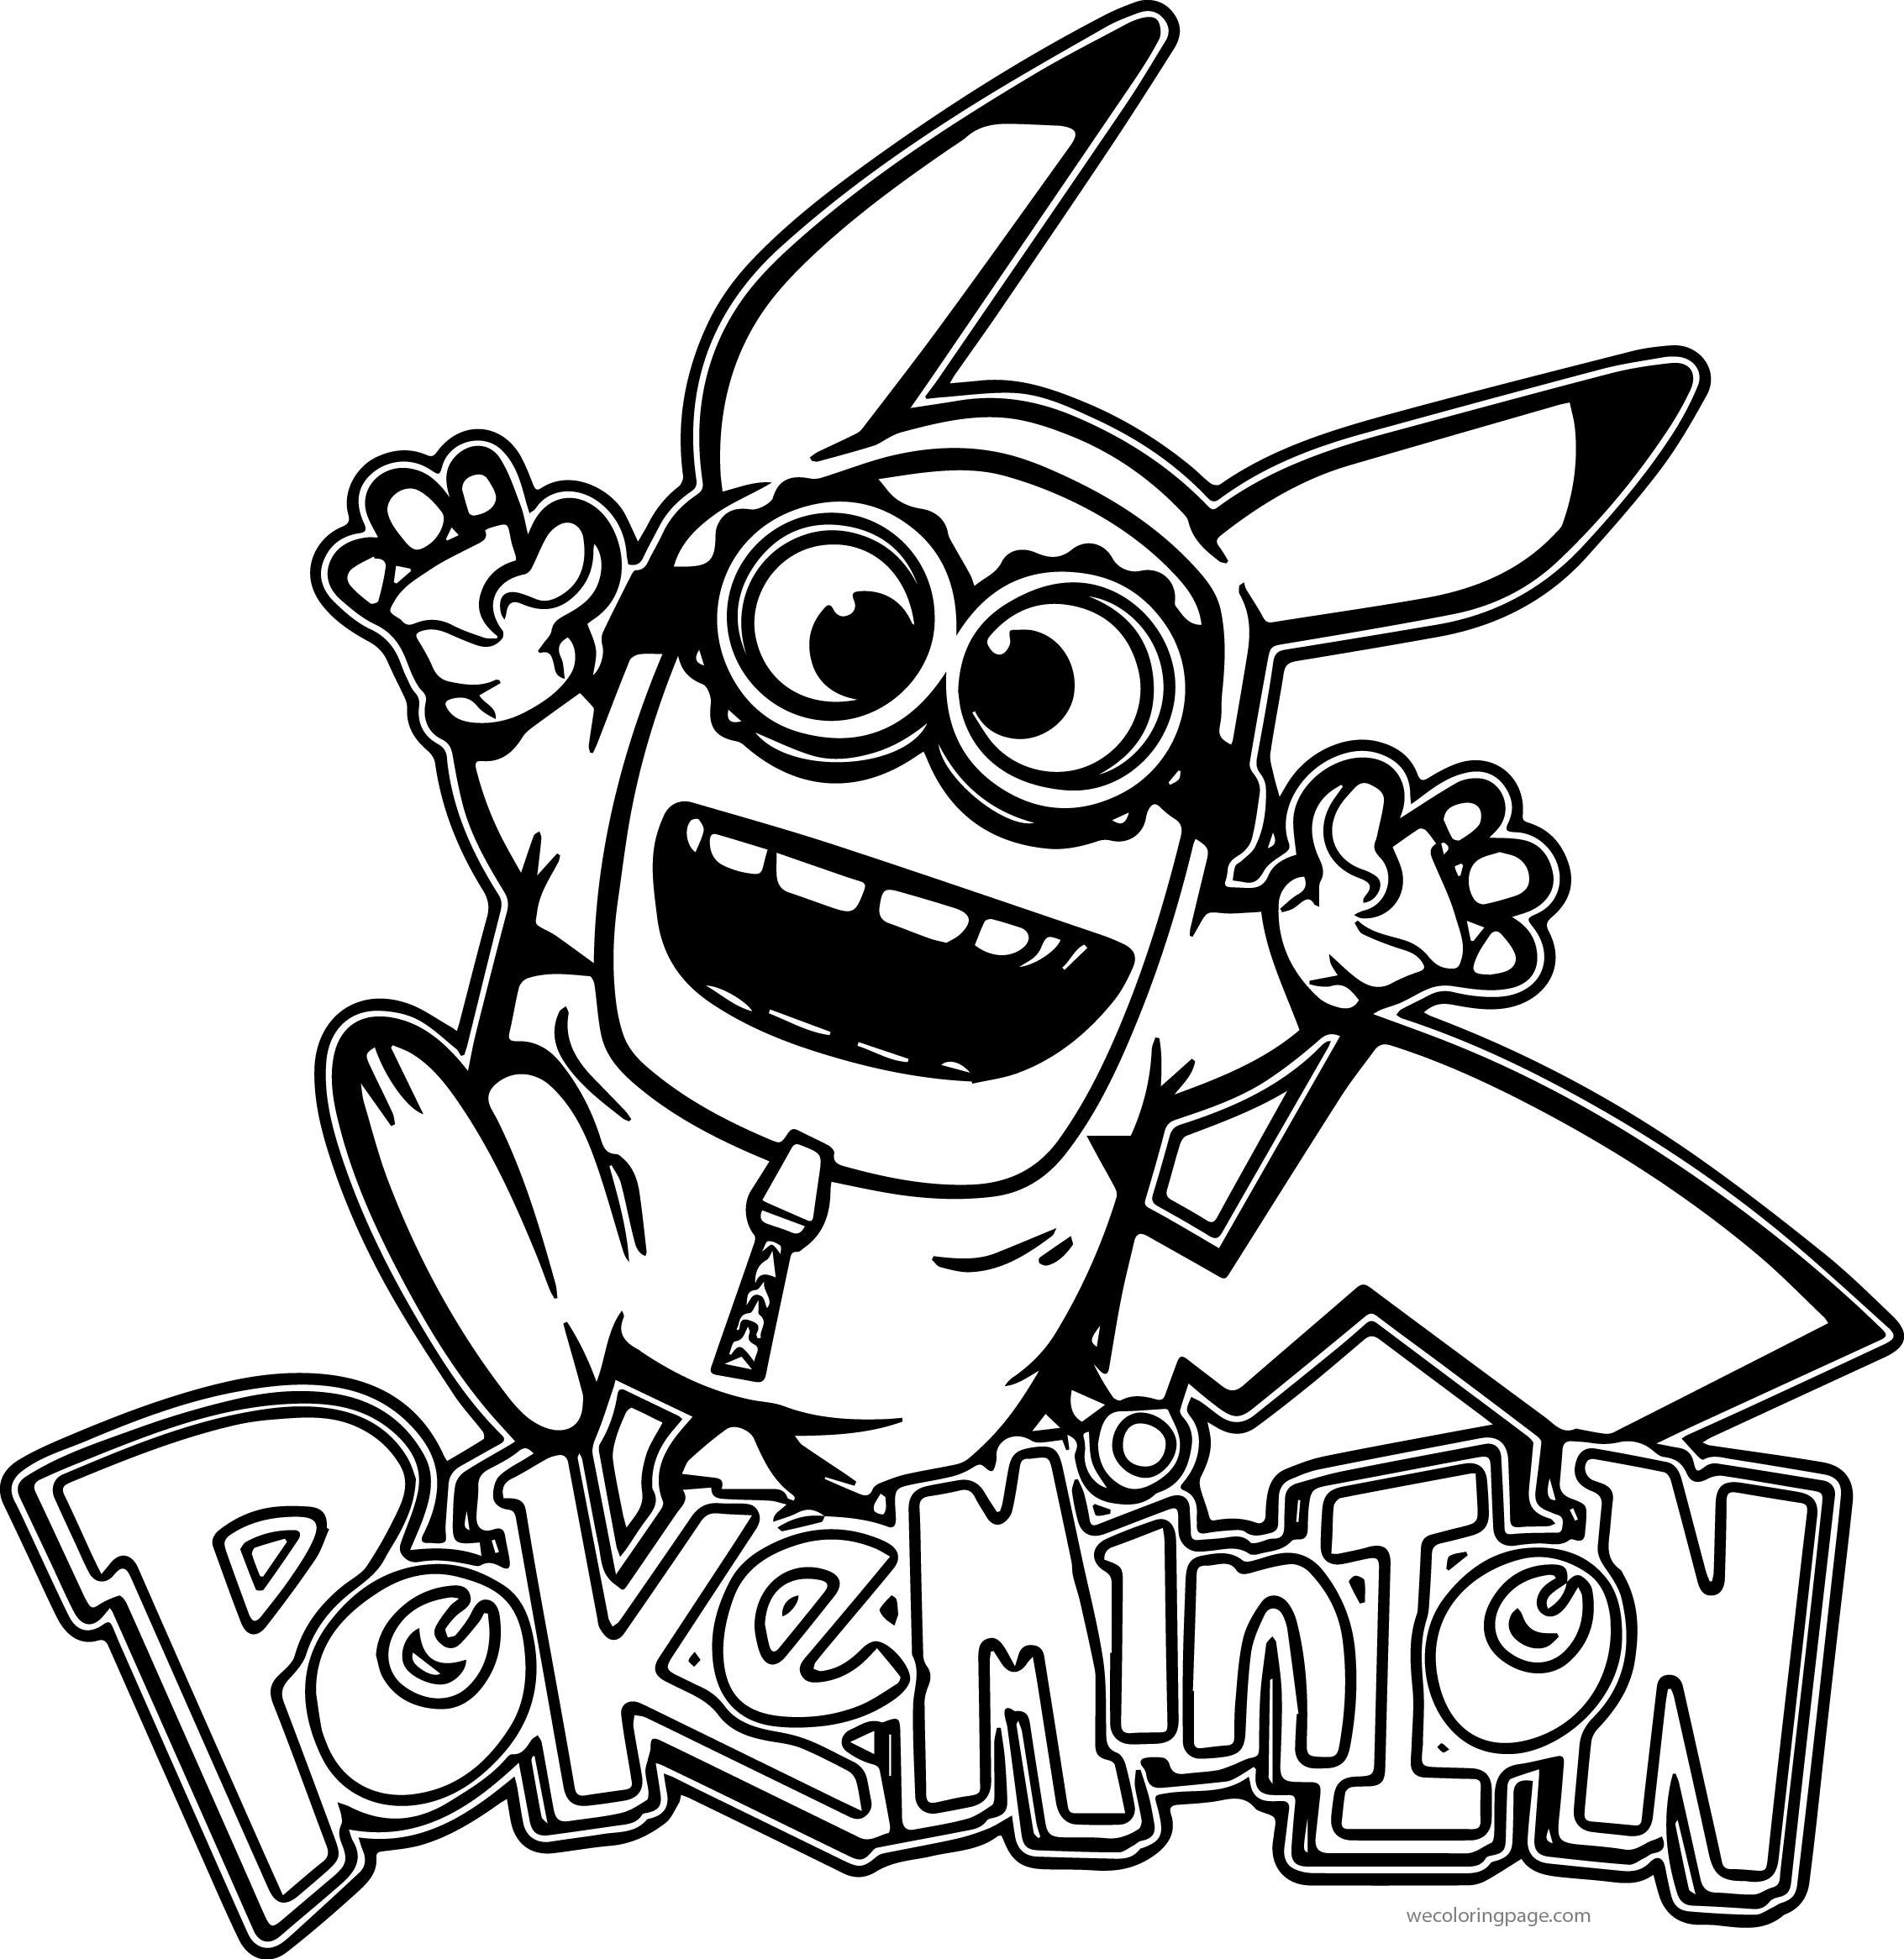 free coloring pages minions fun learn free worksheets for kid minions free free minions pages coloring